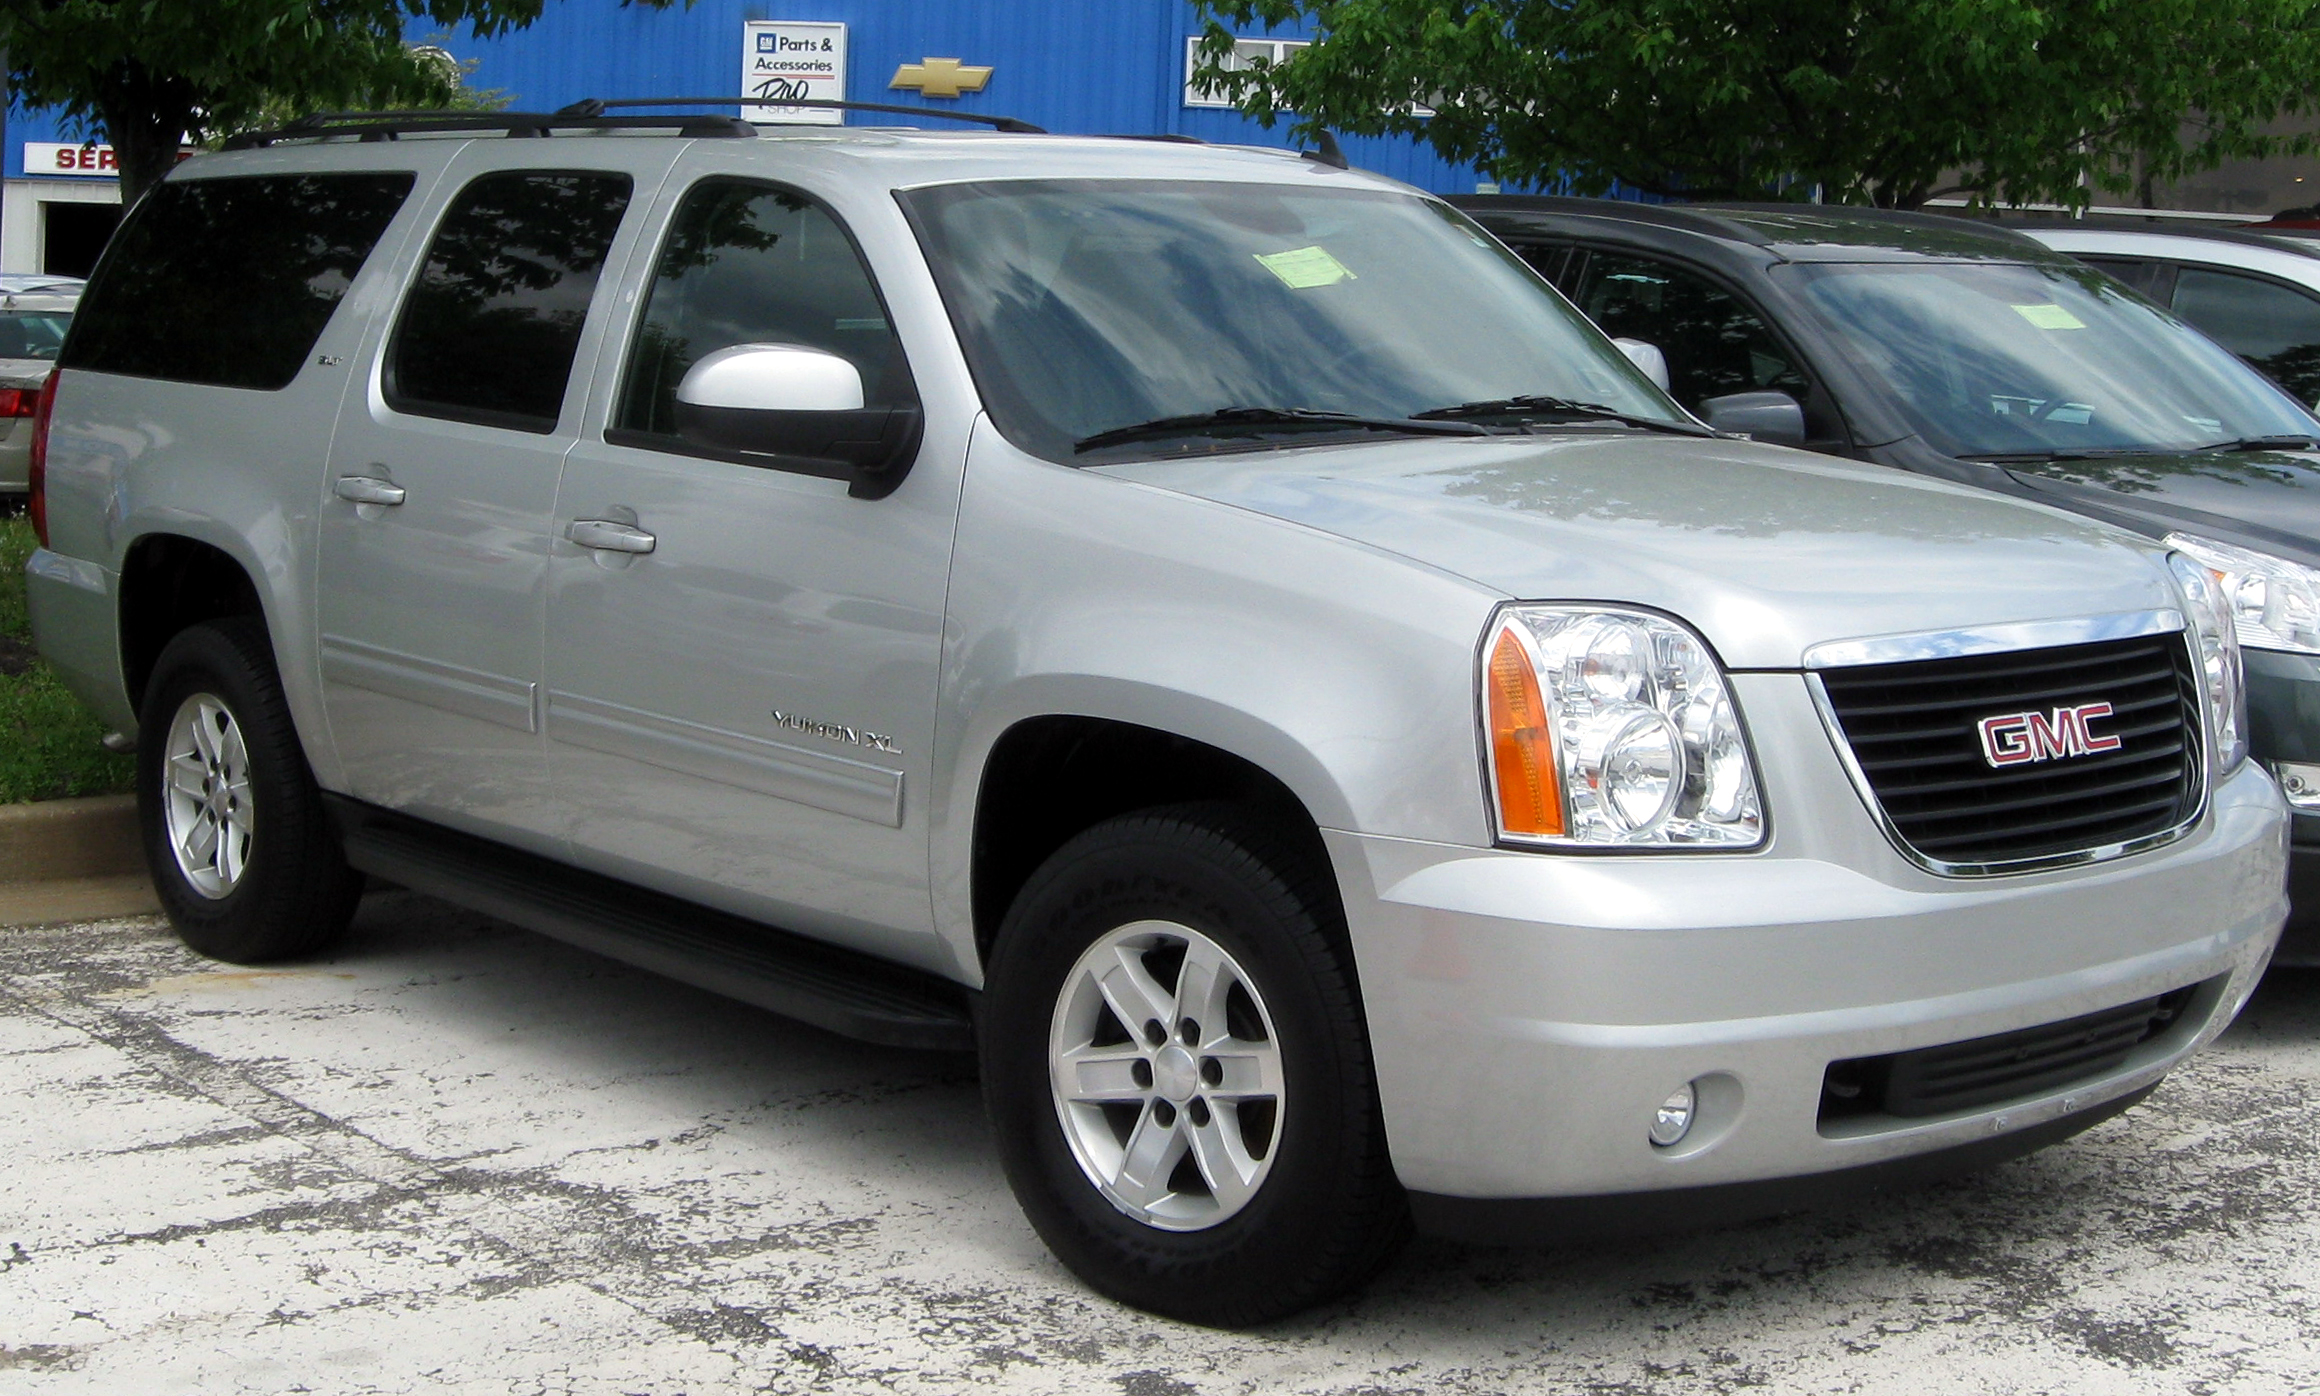 Description 2010 GMC Yukon XL SLT -- 05-06-2011.jpg